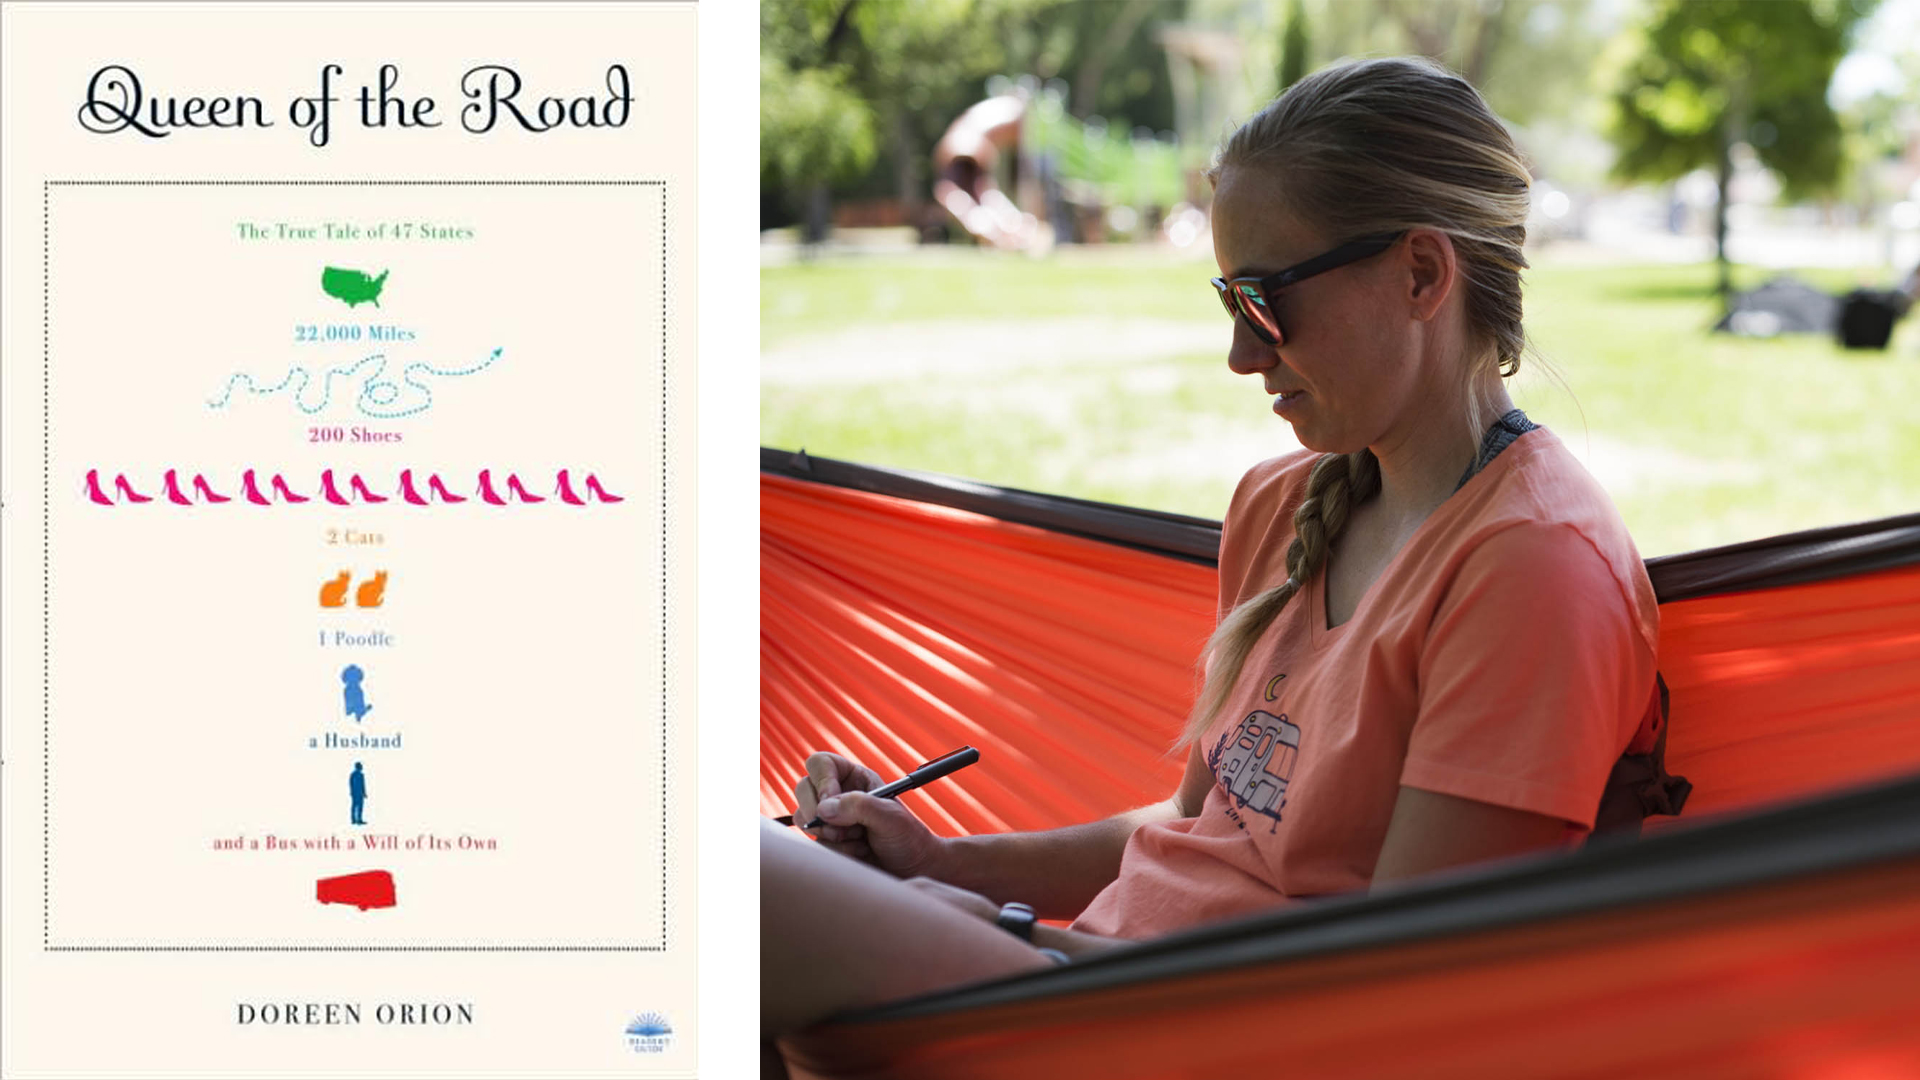 Queen of the Road book cover and a female sitting in a hammock